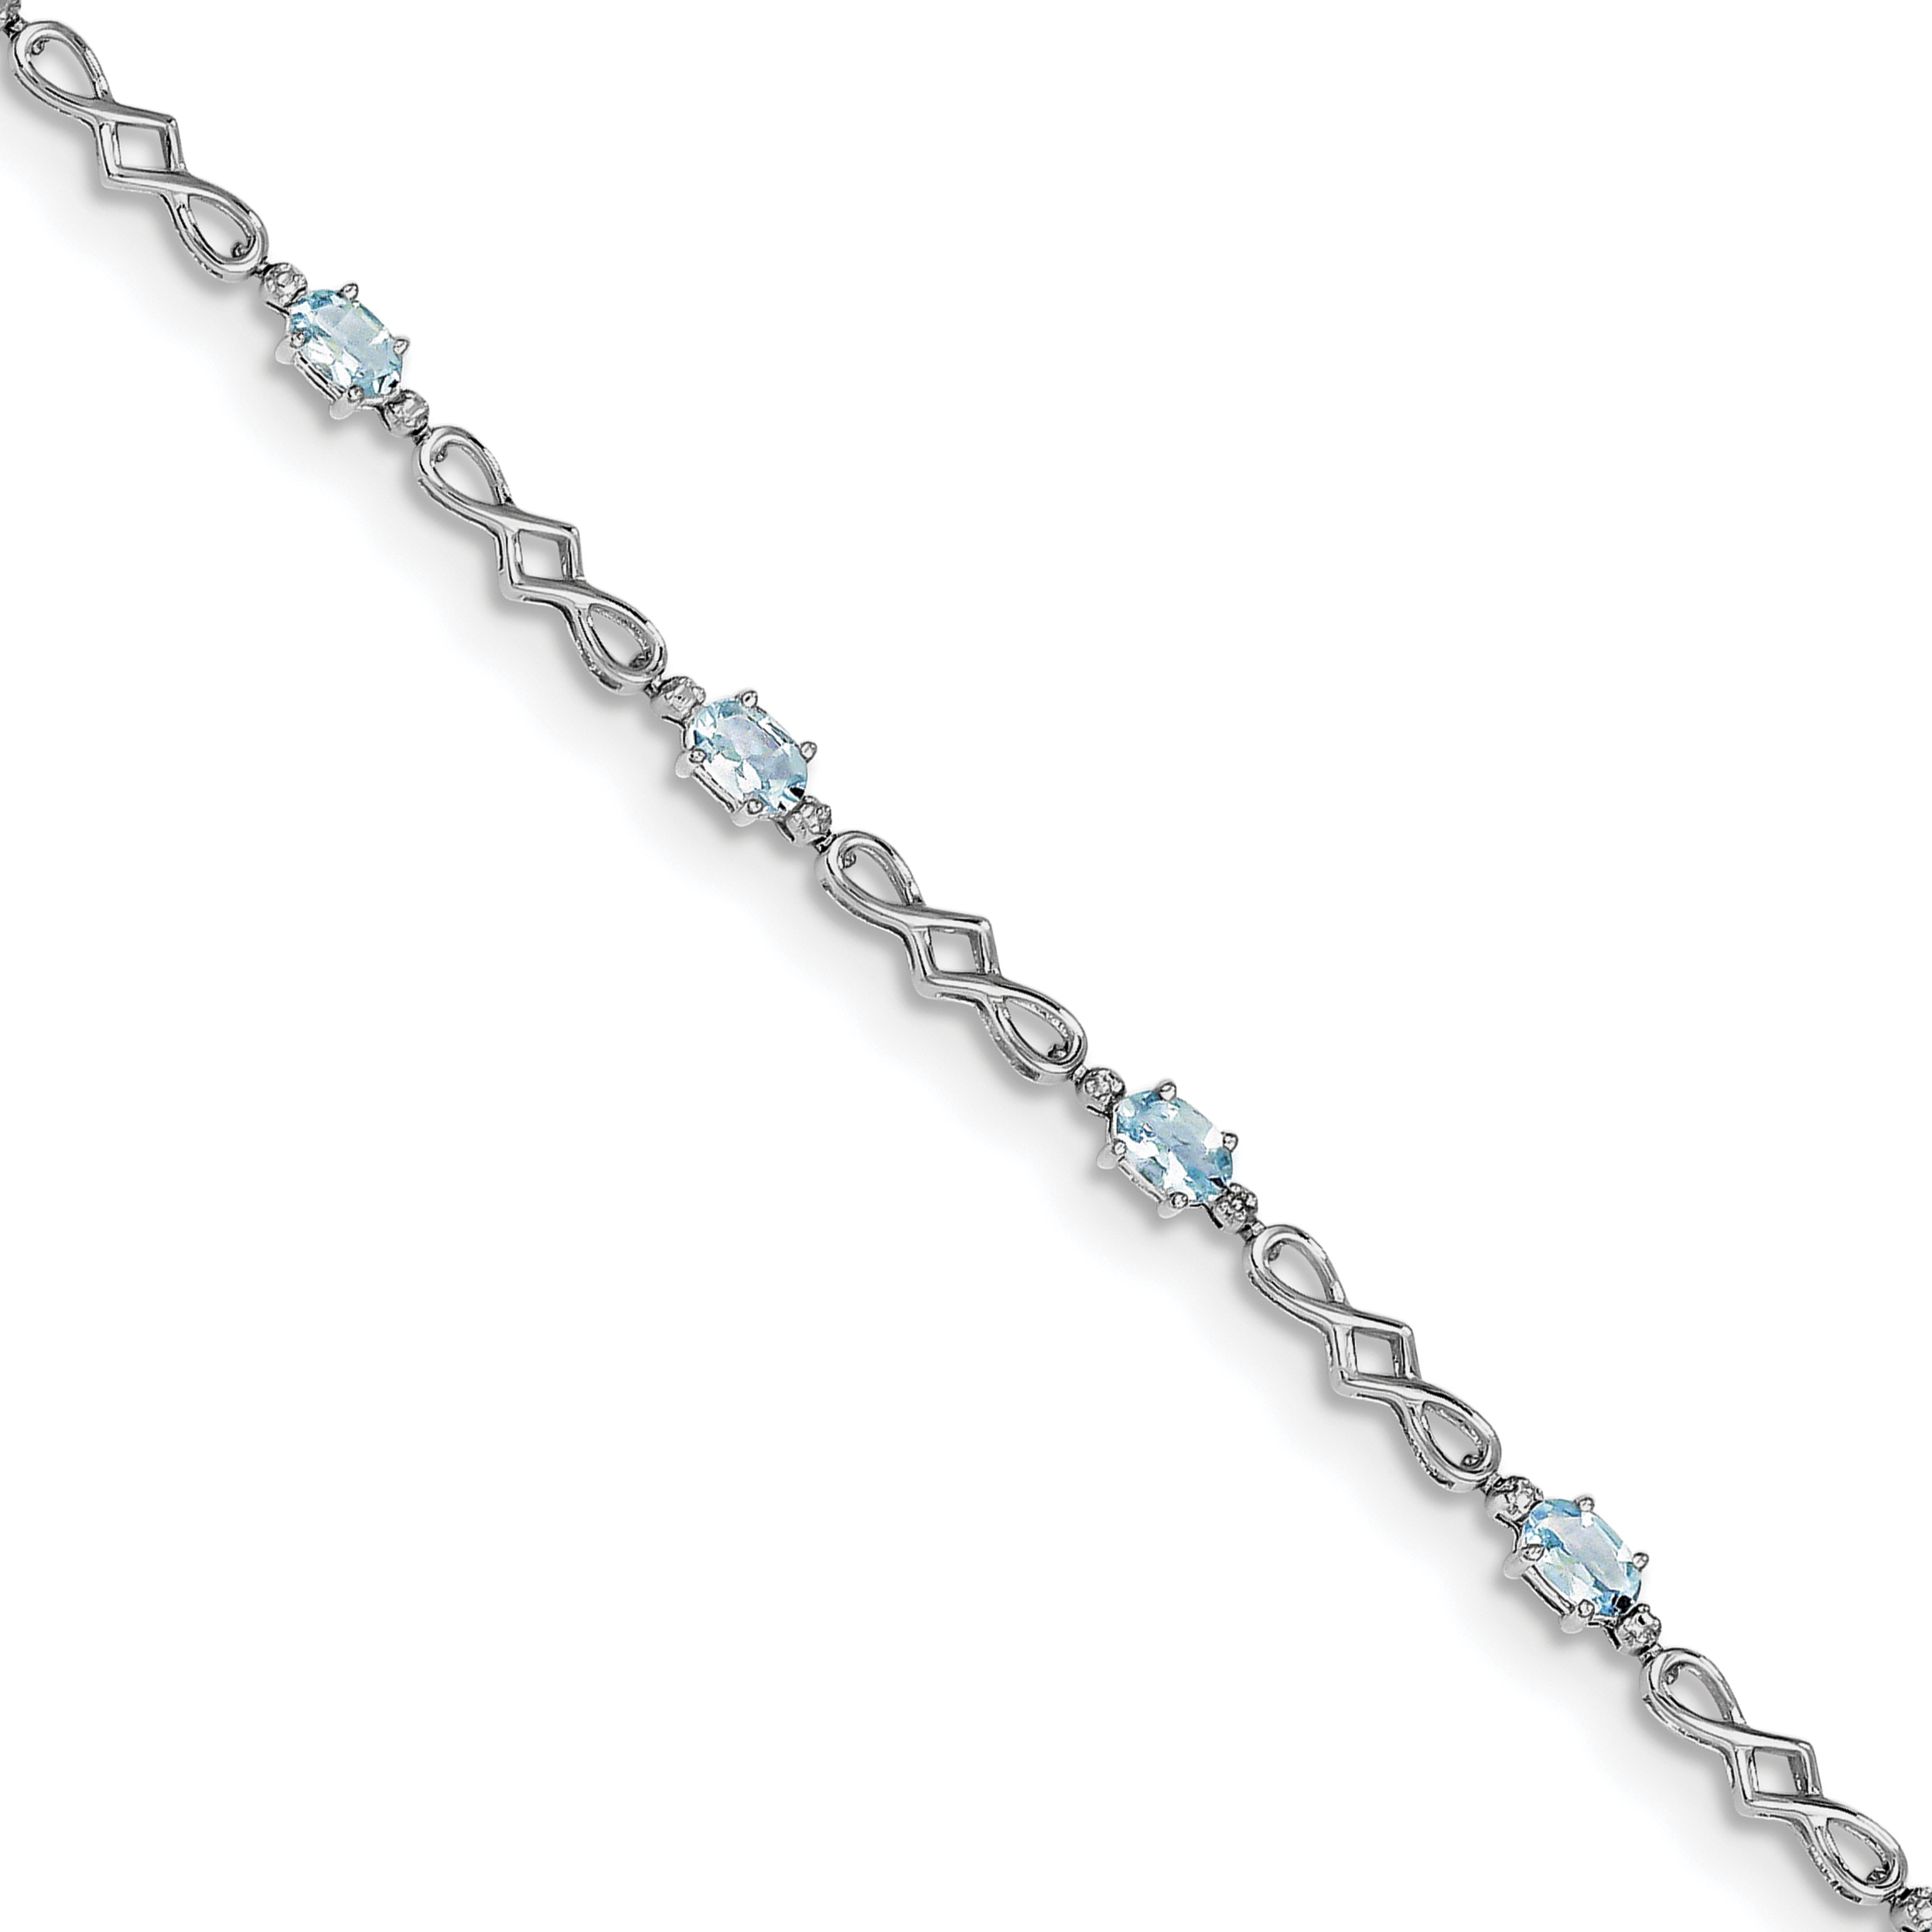 925 Sterling Silver Rhodium-plated Aquamarine and Diamond Bracelet by